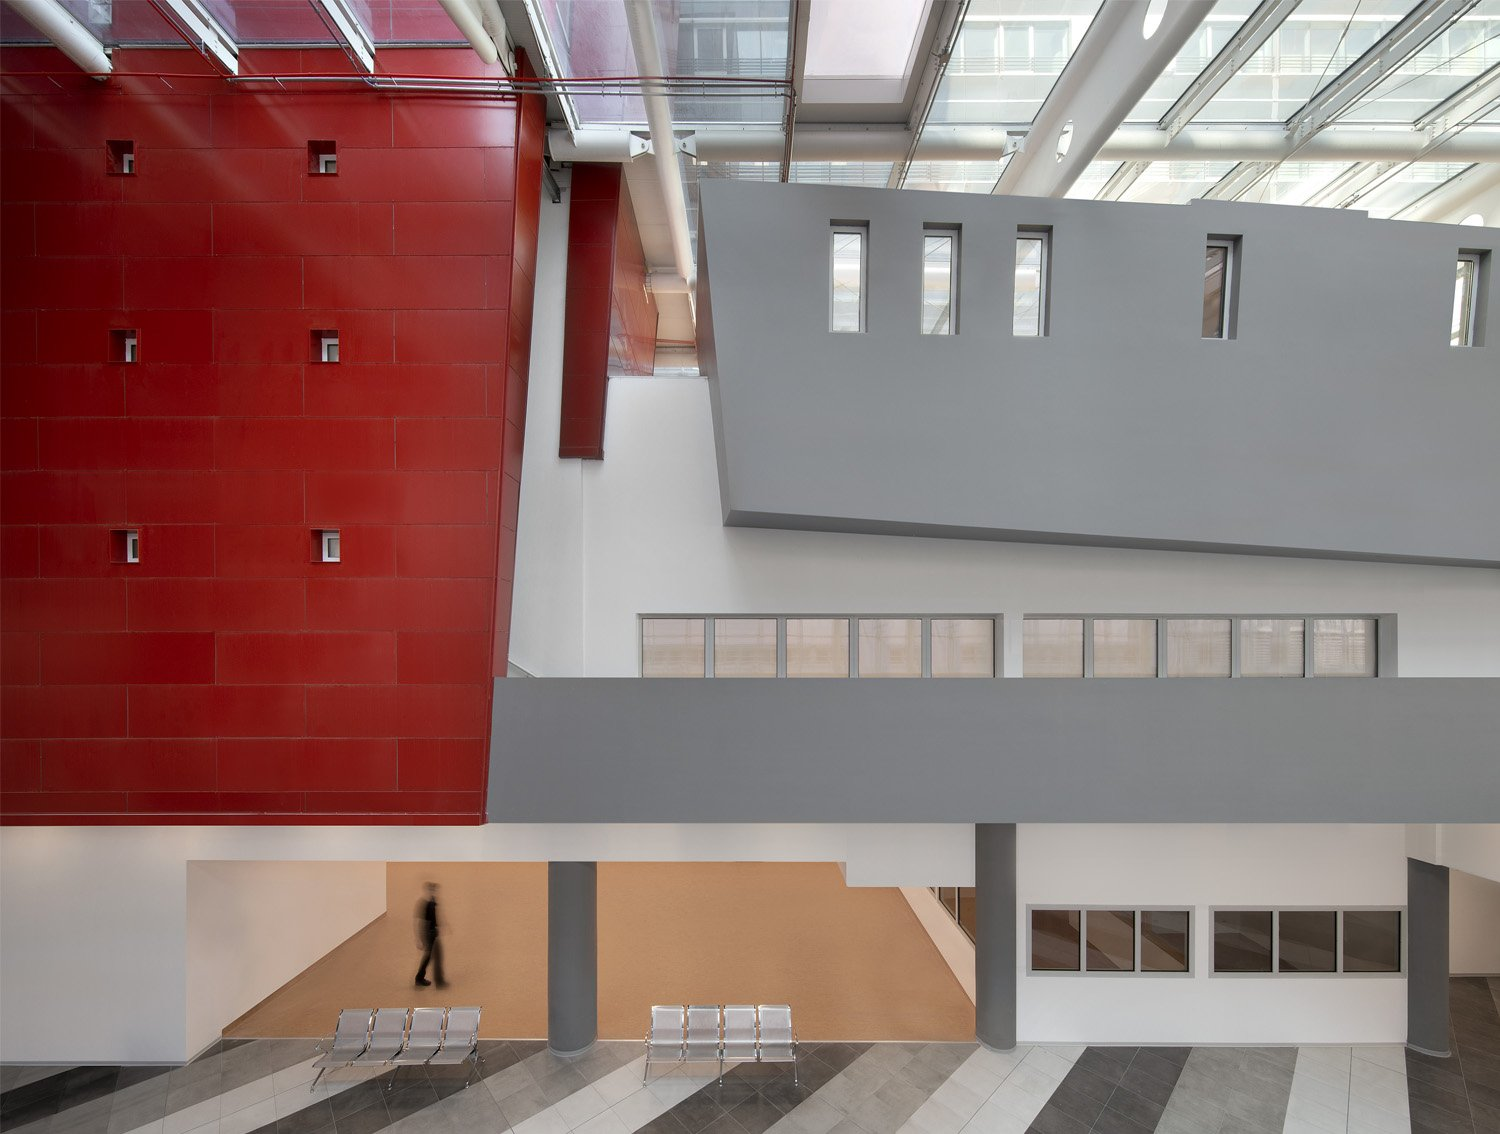 Designing hospitals: one of architecture's biggest challenges